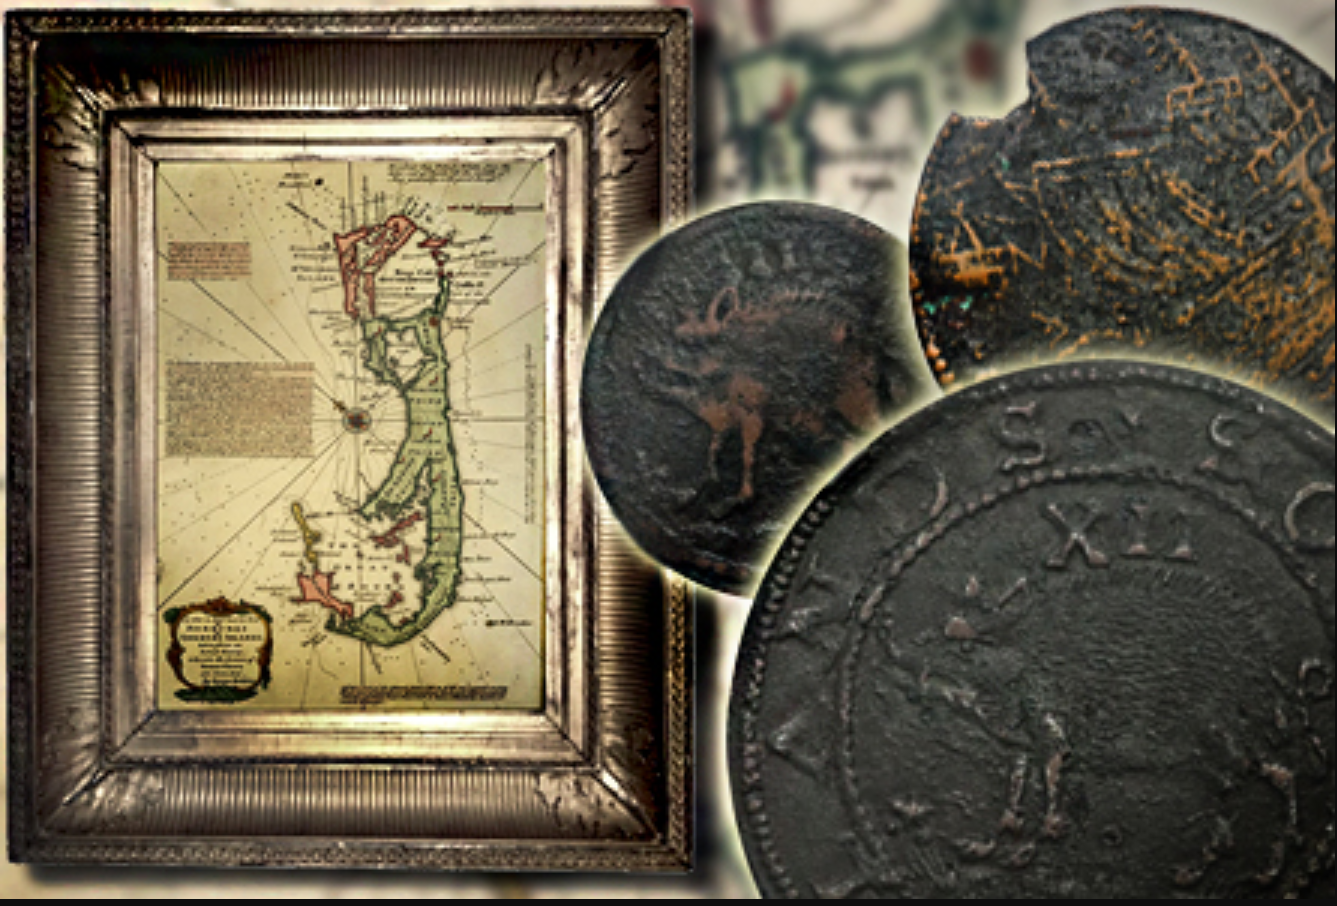 The 1615-16 Coins of #Bermuda : The First English Coins of North America @coinweek